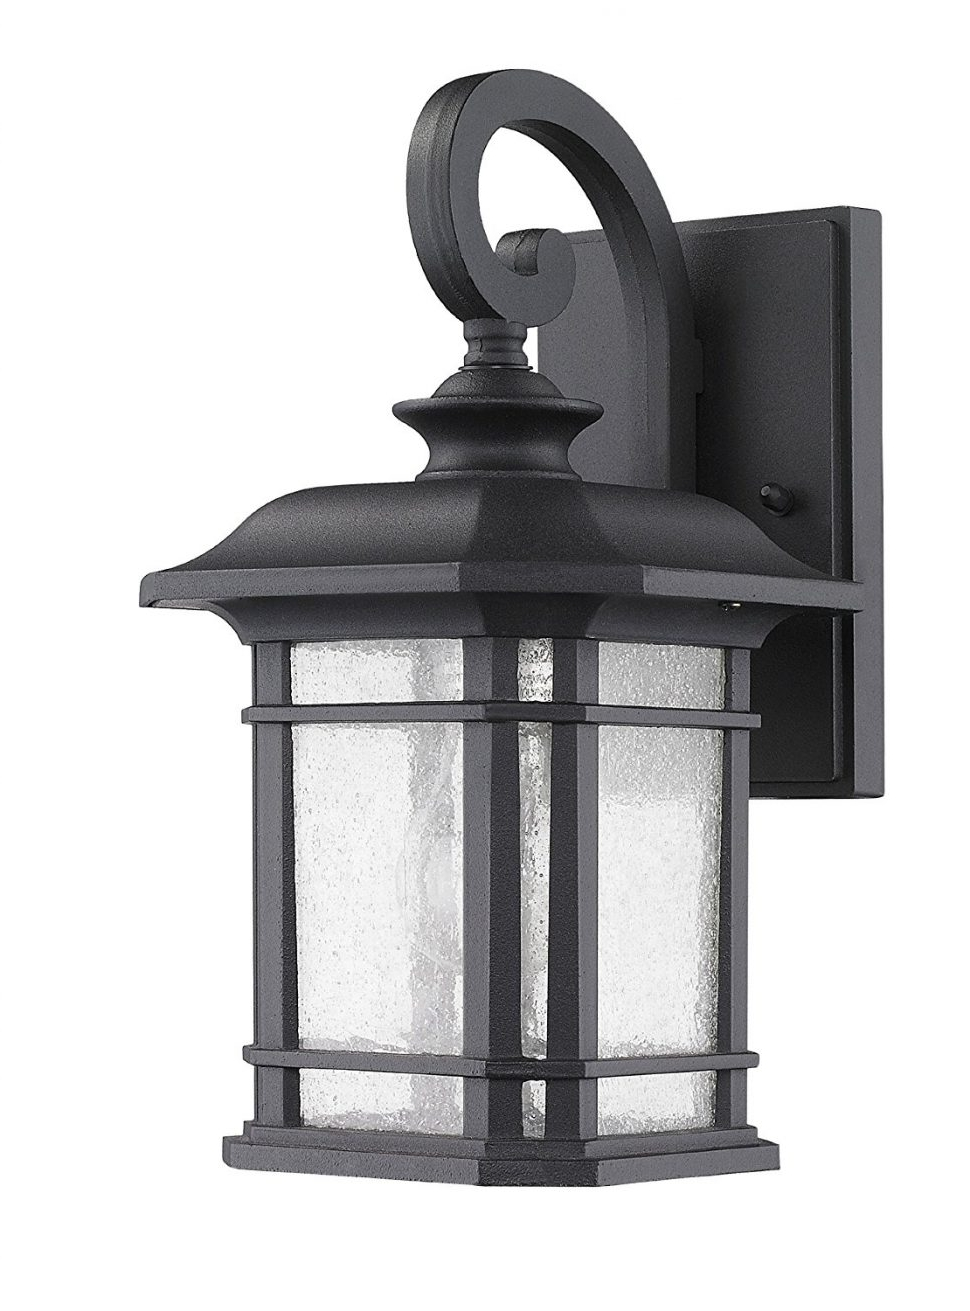 Best And Newest South Africa Outdoor Wall Lighting Throughout Furniture : Solar Wall Lights Outdoor Solar Outdoor Wall Lights (View 8 of 20)